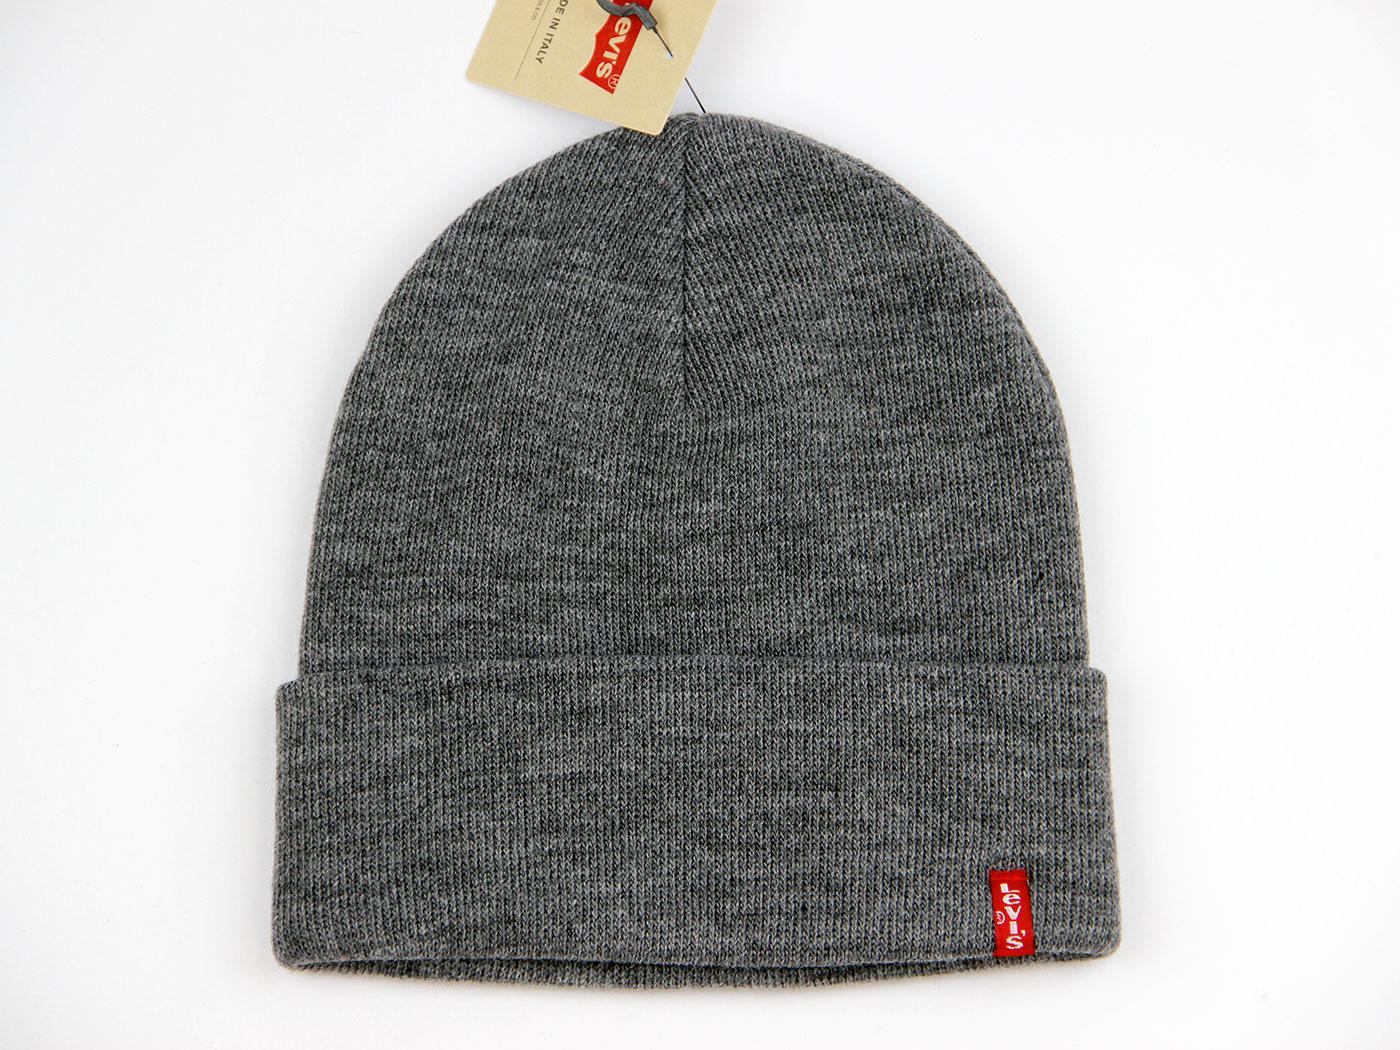 LEVI'S® Retro Indie Knitted Beanie Hat (Grey)